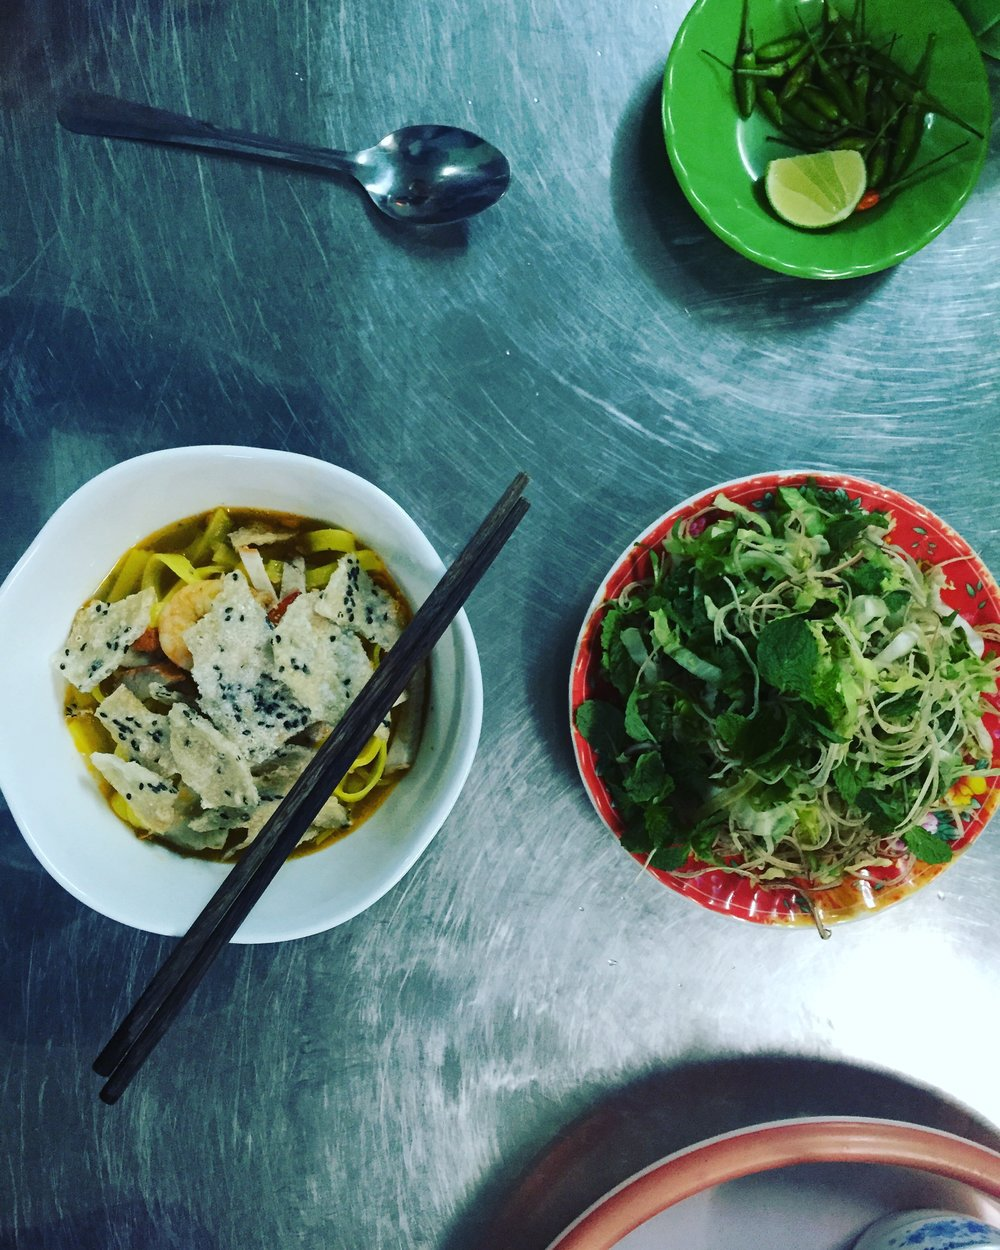 One of our amazing meals on a food tour with Saigon Street Eats.